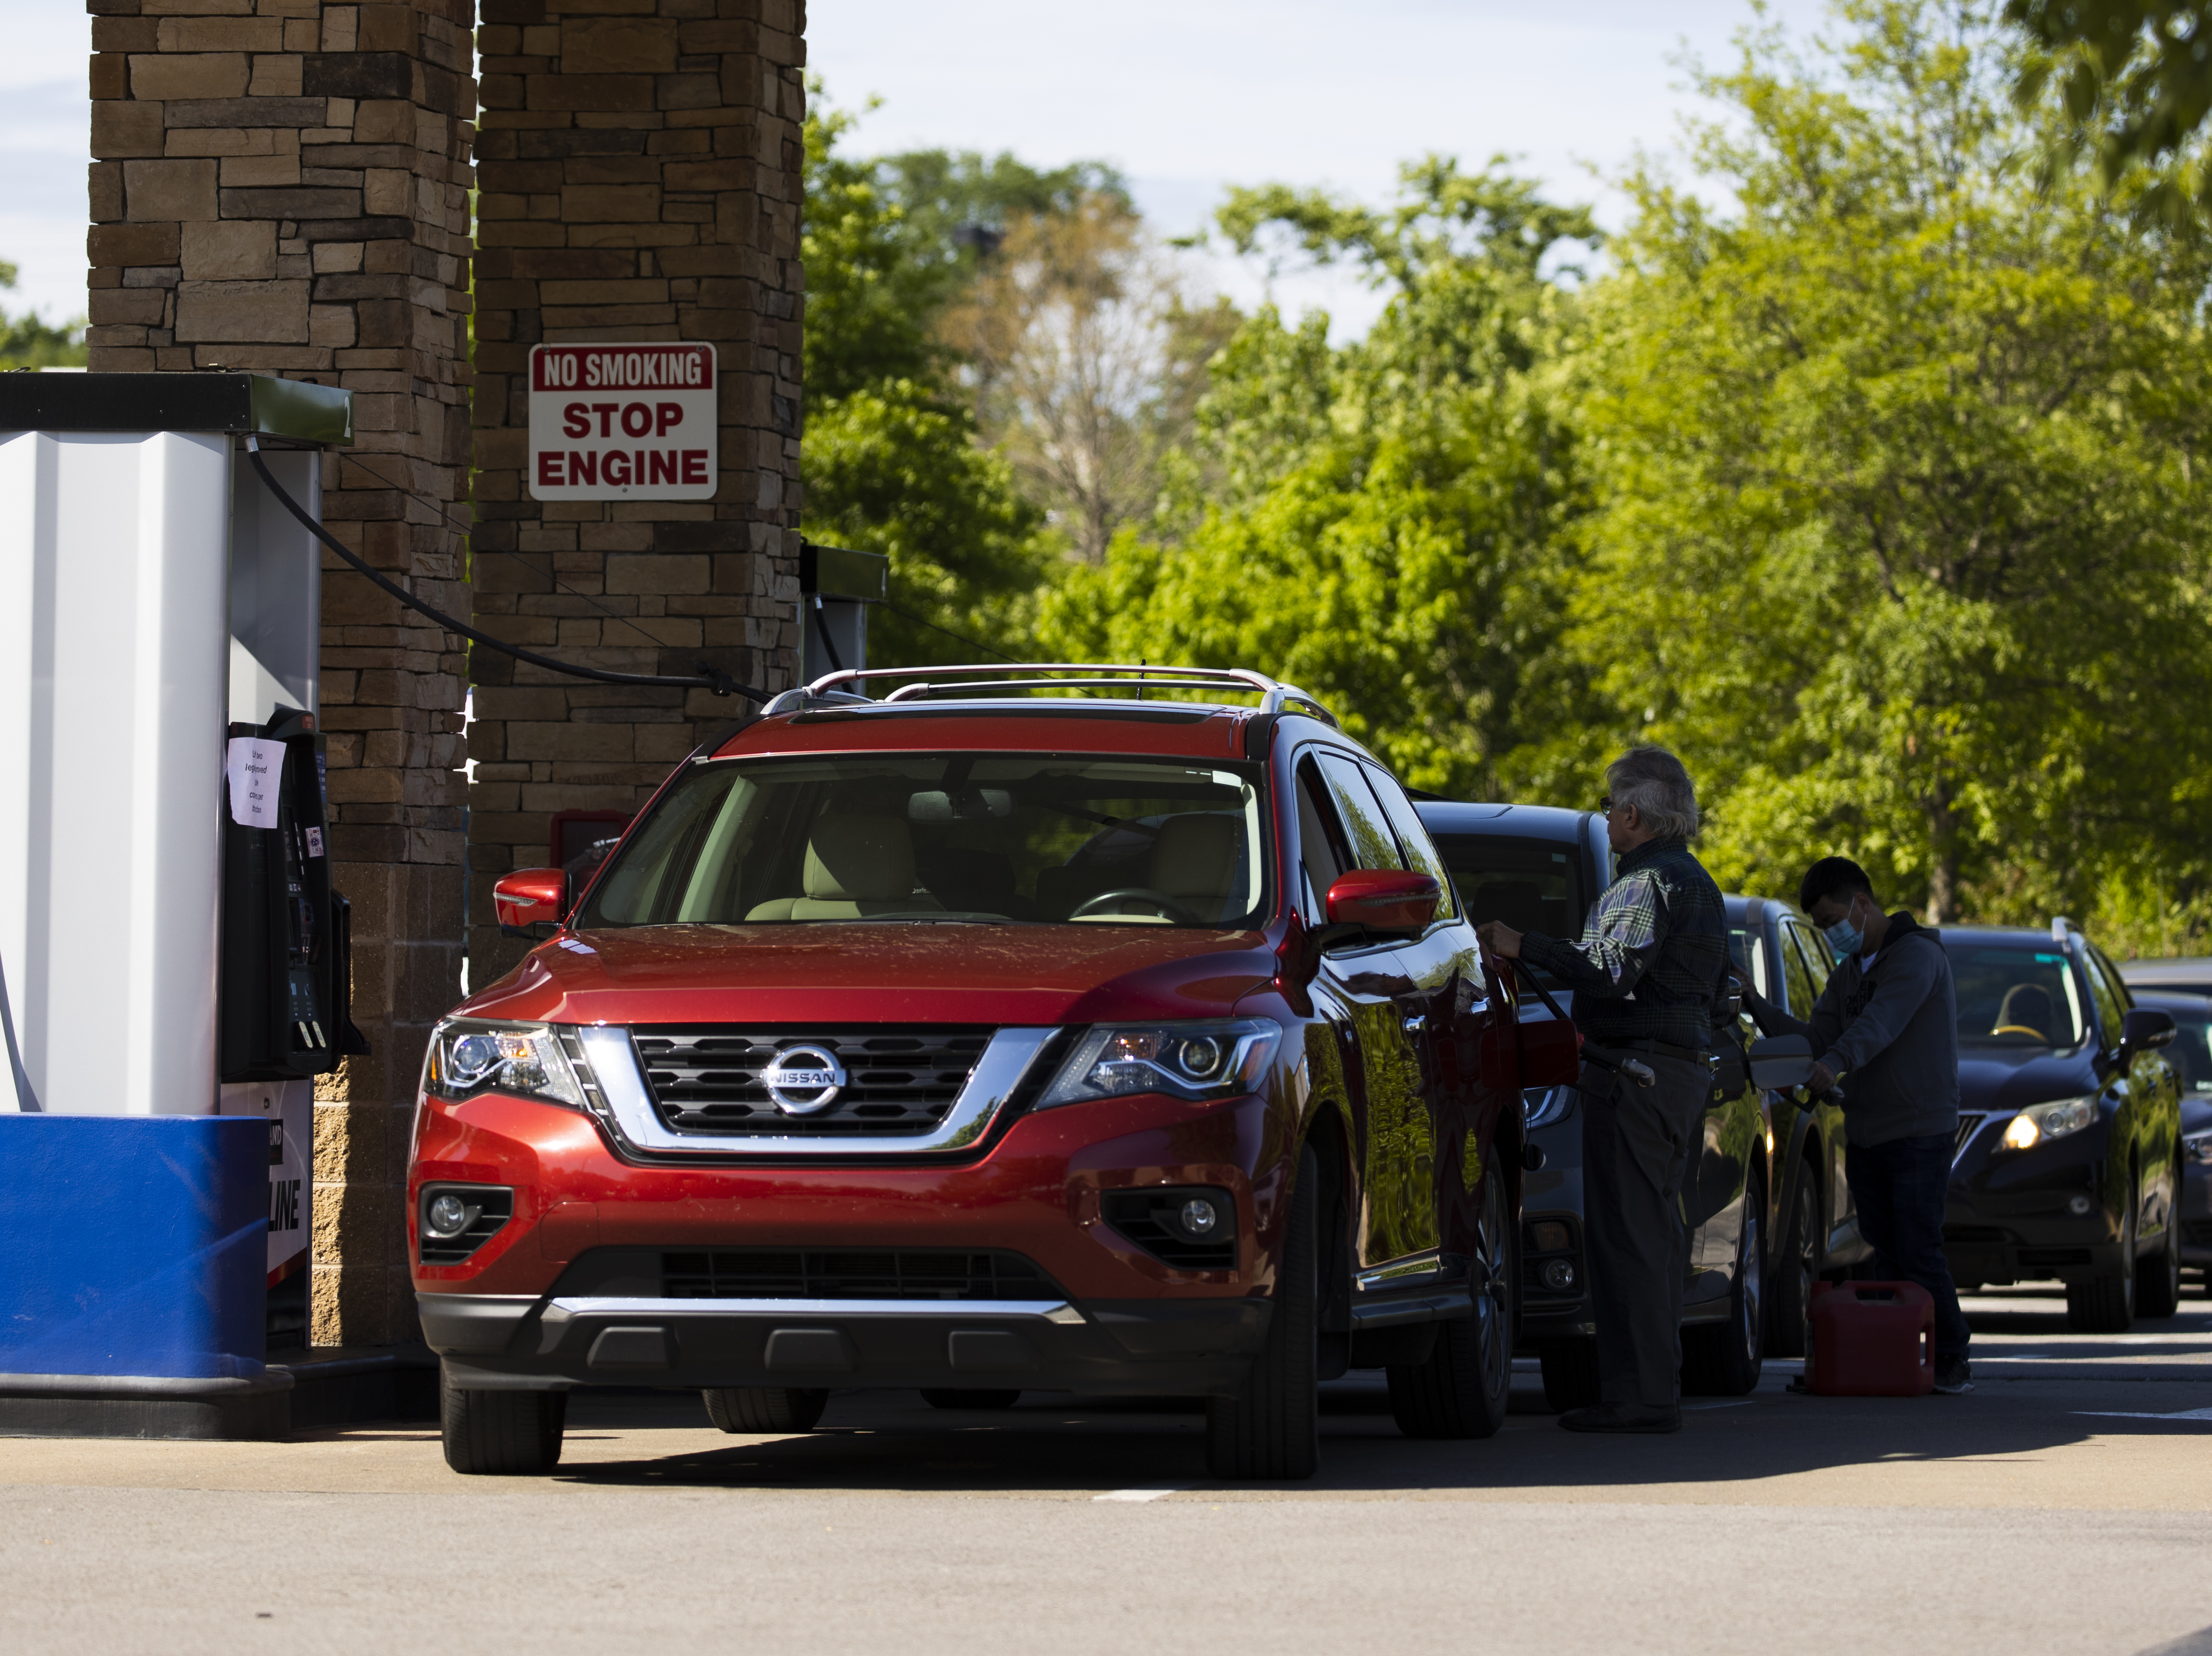 Customers wait in line to fill up their tanks this week at a Costco gas station in Nashville, Tenn. It will take several days for the supply chain of fuel to return to normal even after Colonial Pipeline said it had brought its entire pipeline system back into operation.